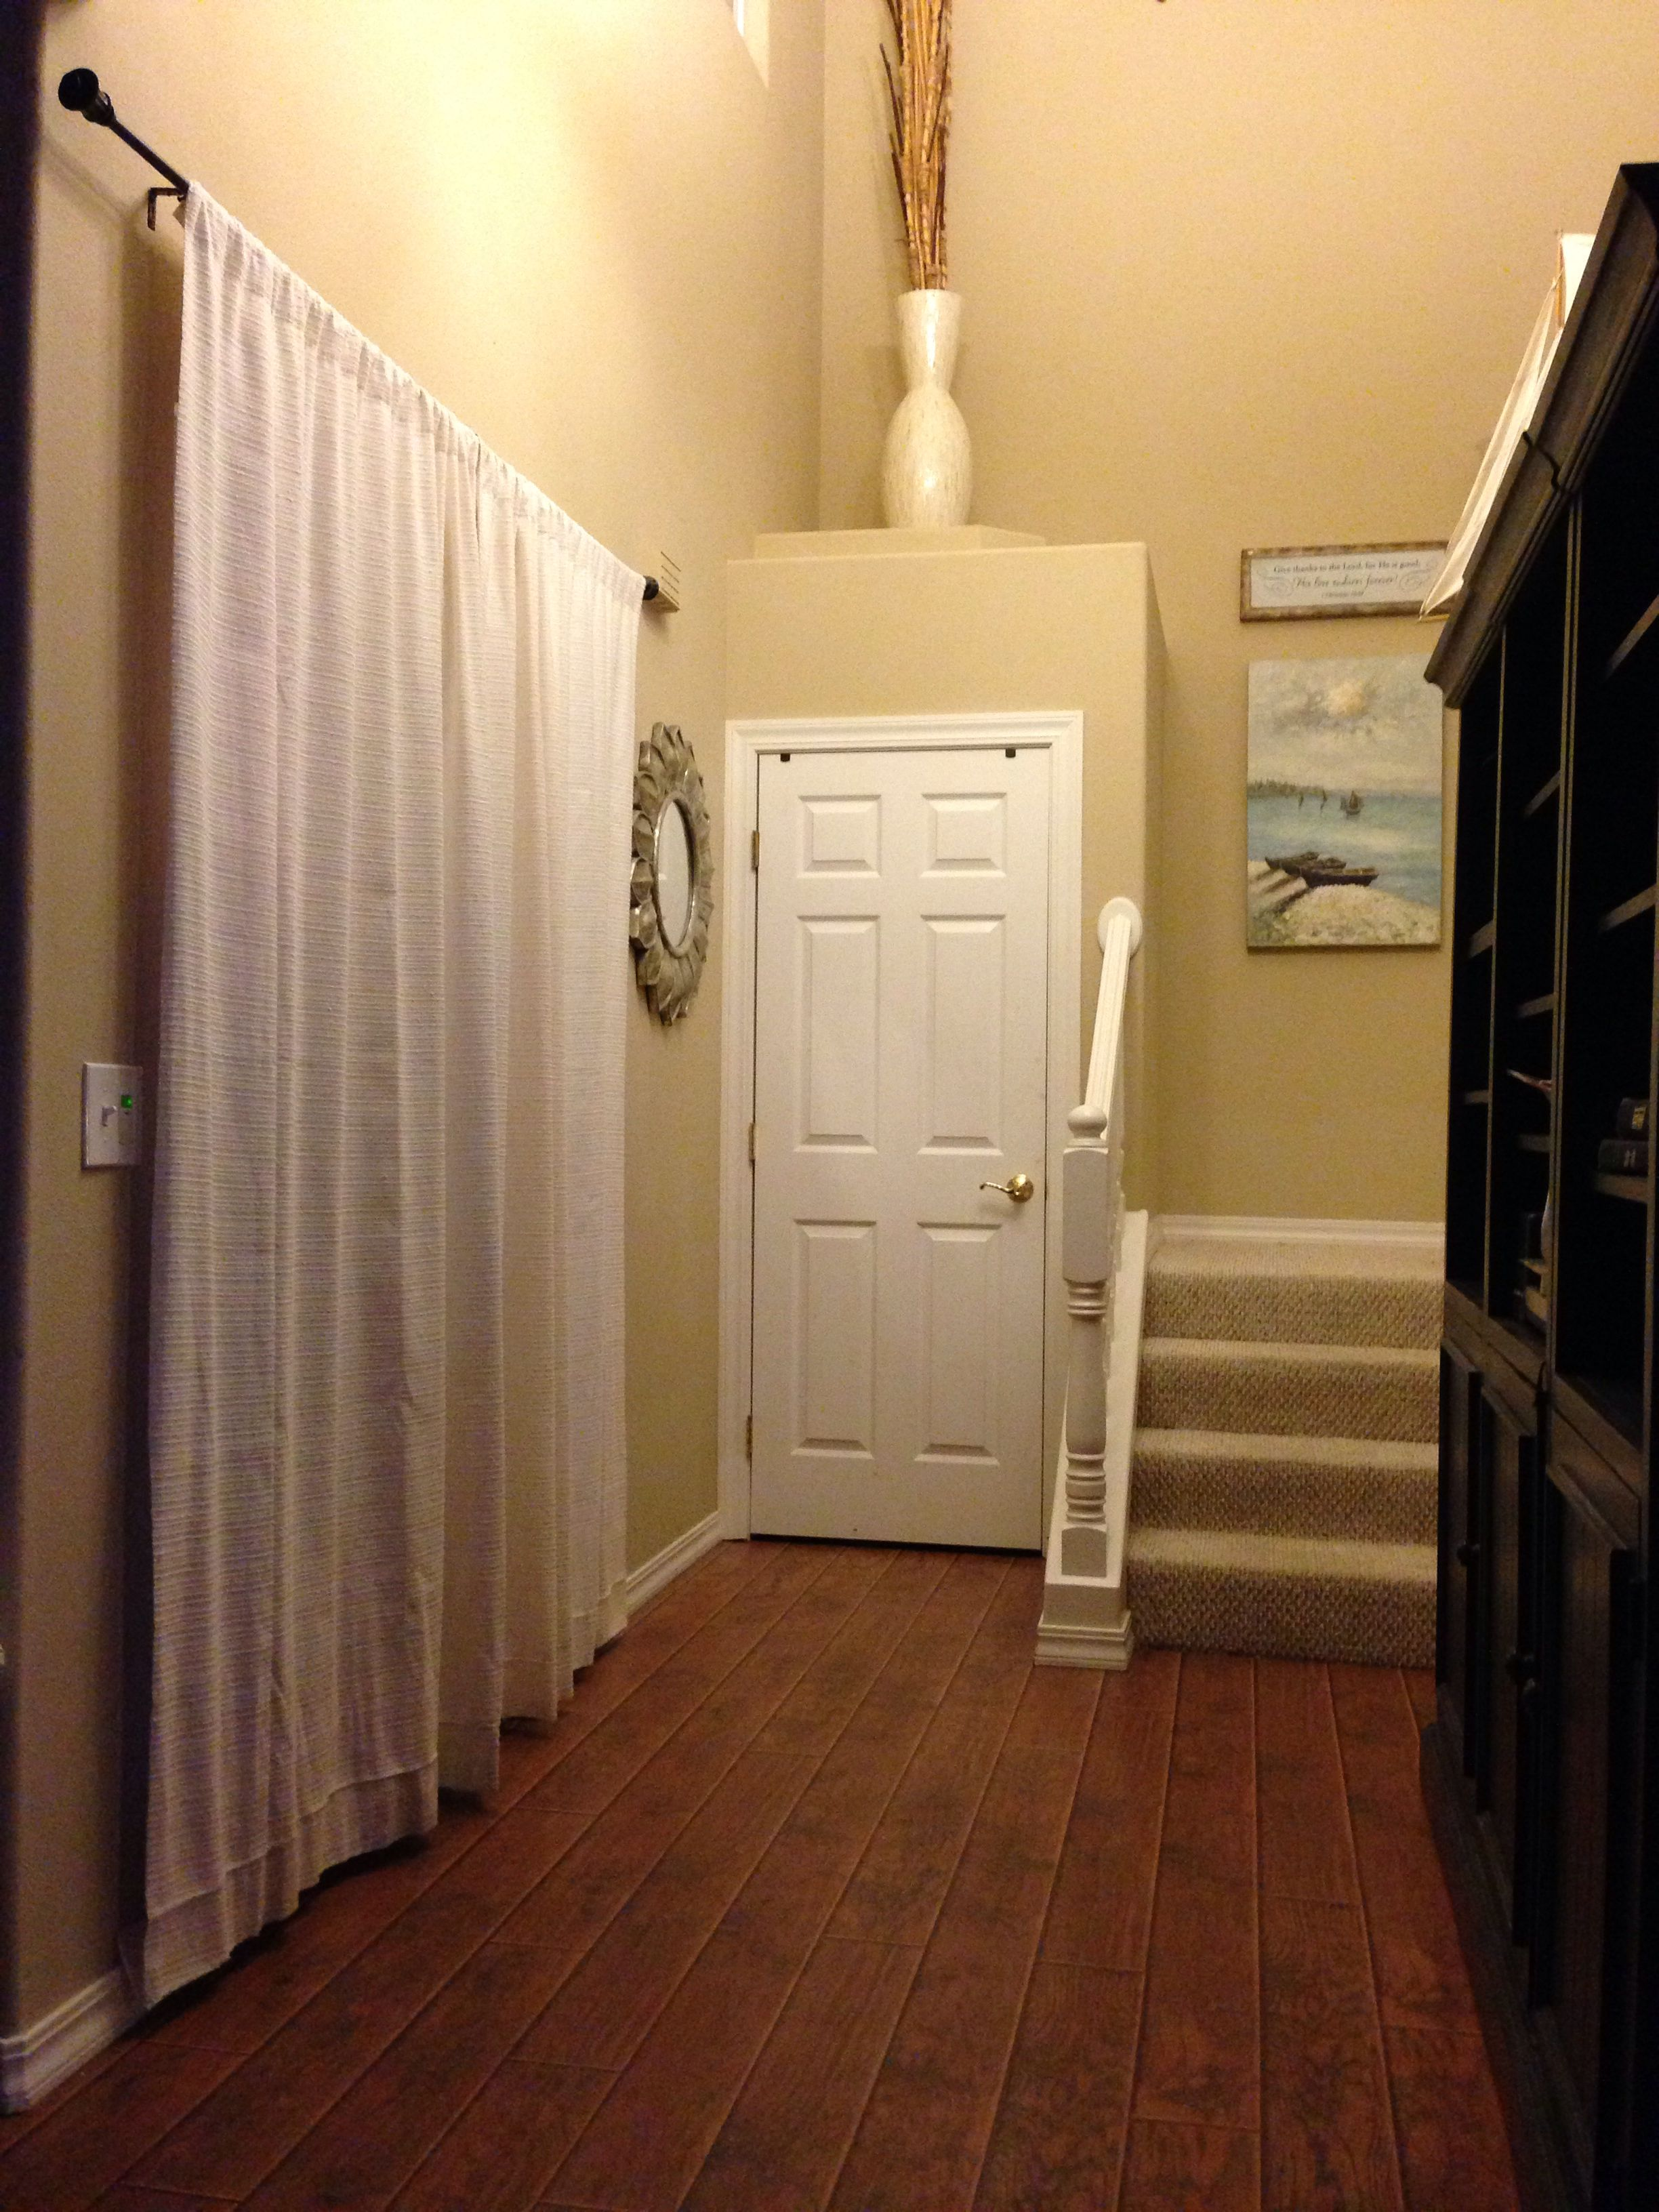 Entry Way I Placed Curtains To Cover Front Door To Keep The Heat Cold Air Out